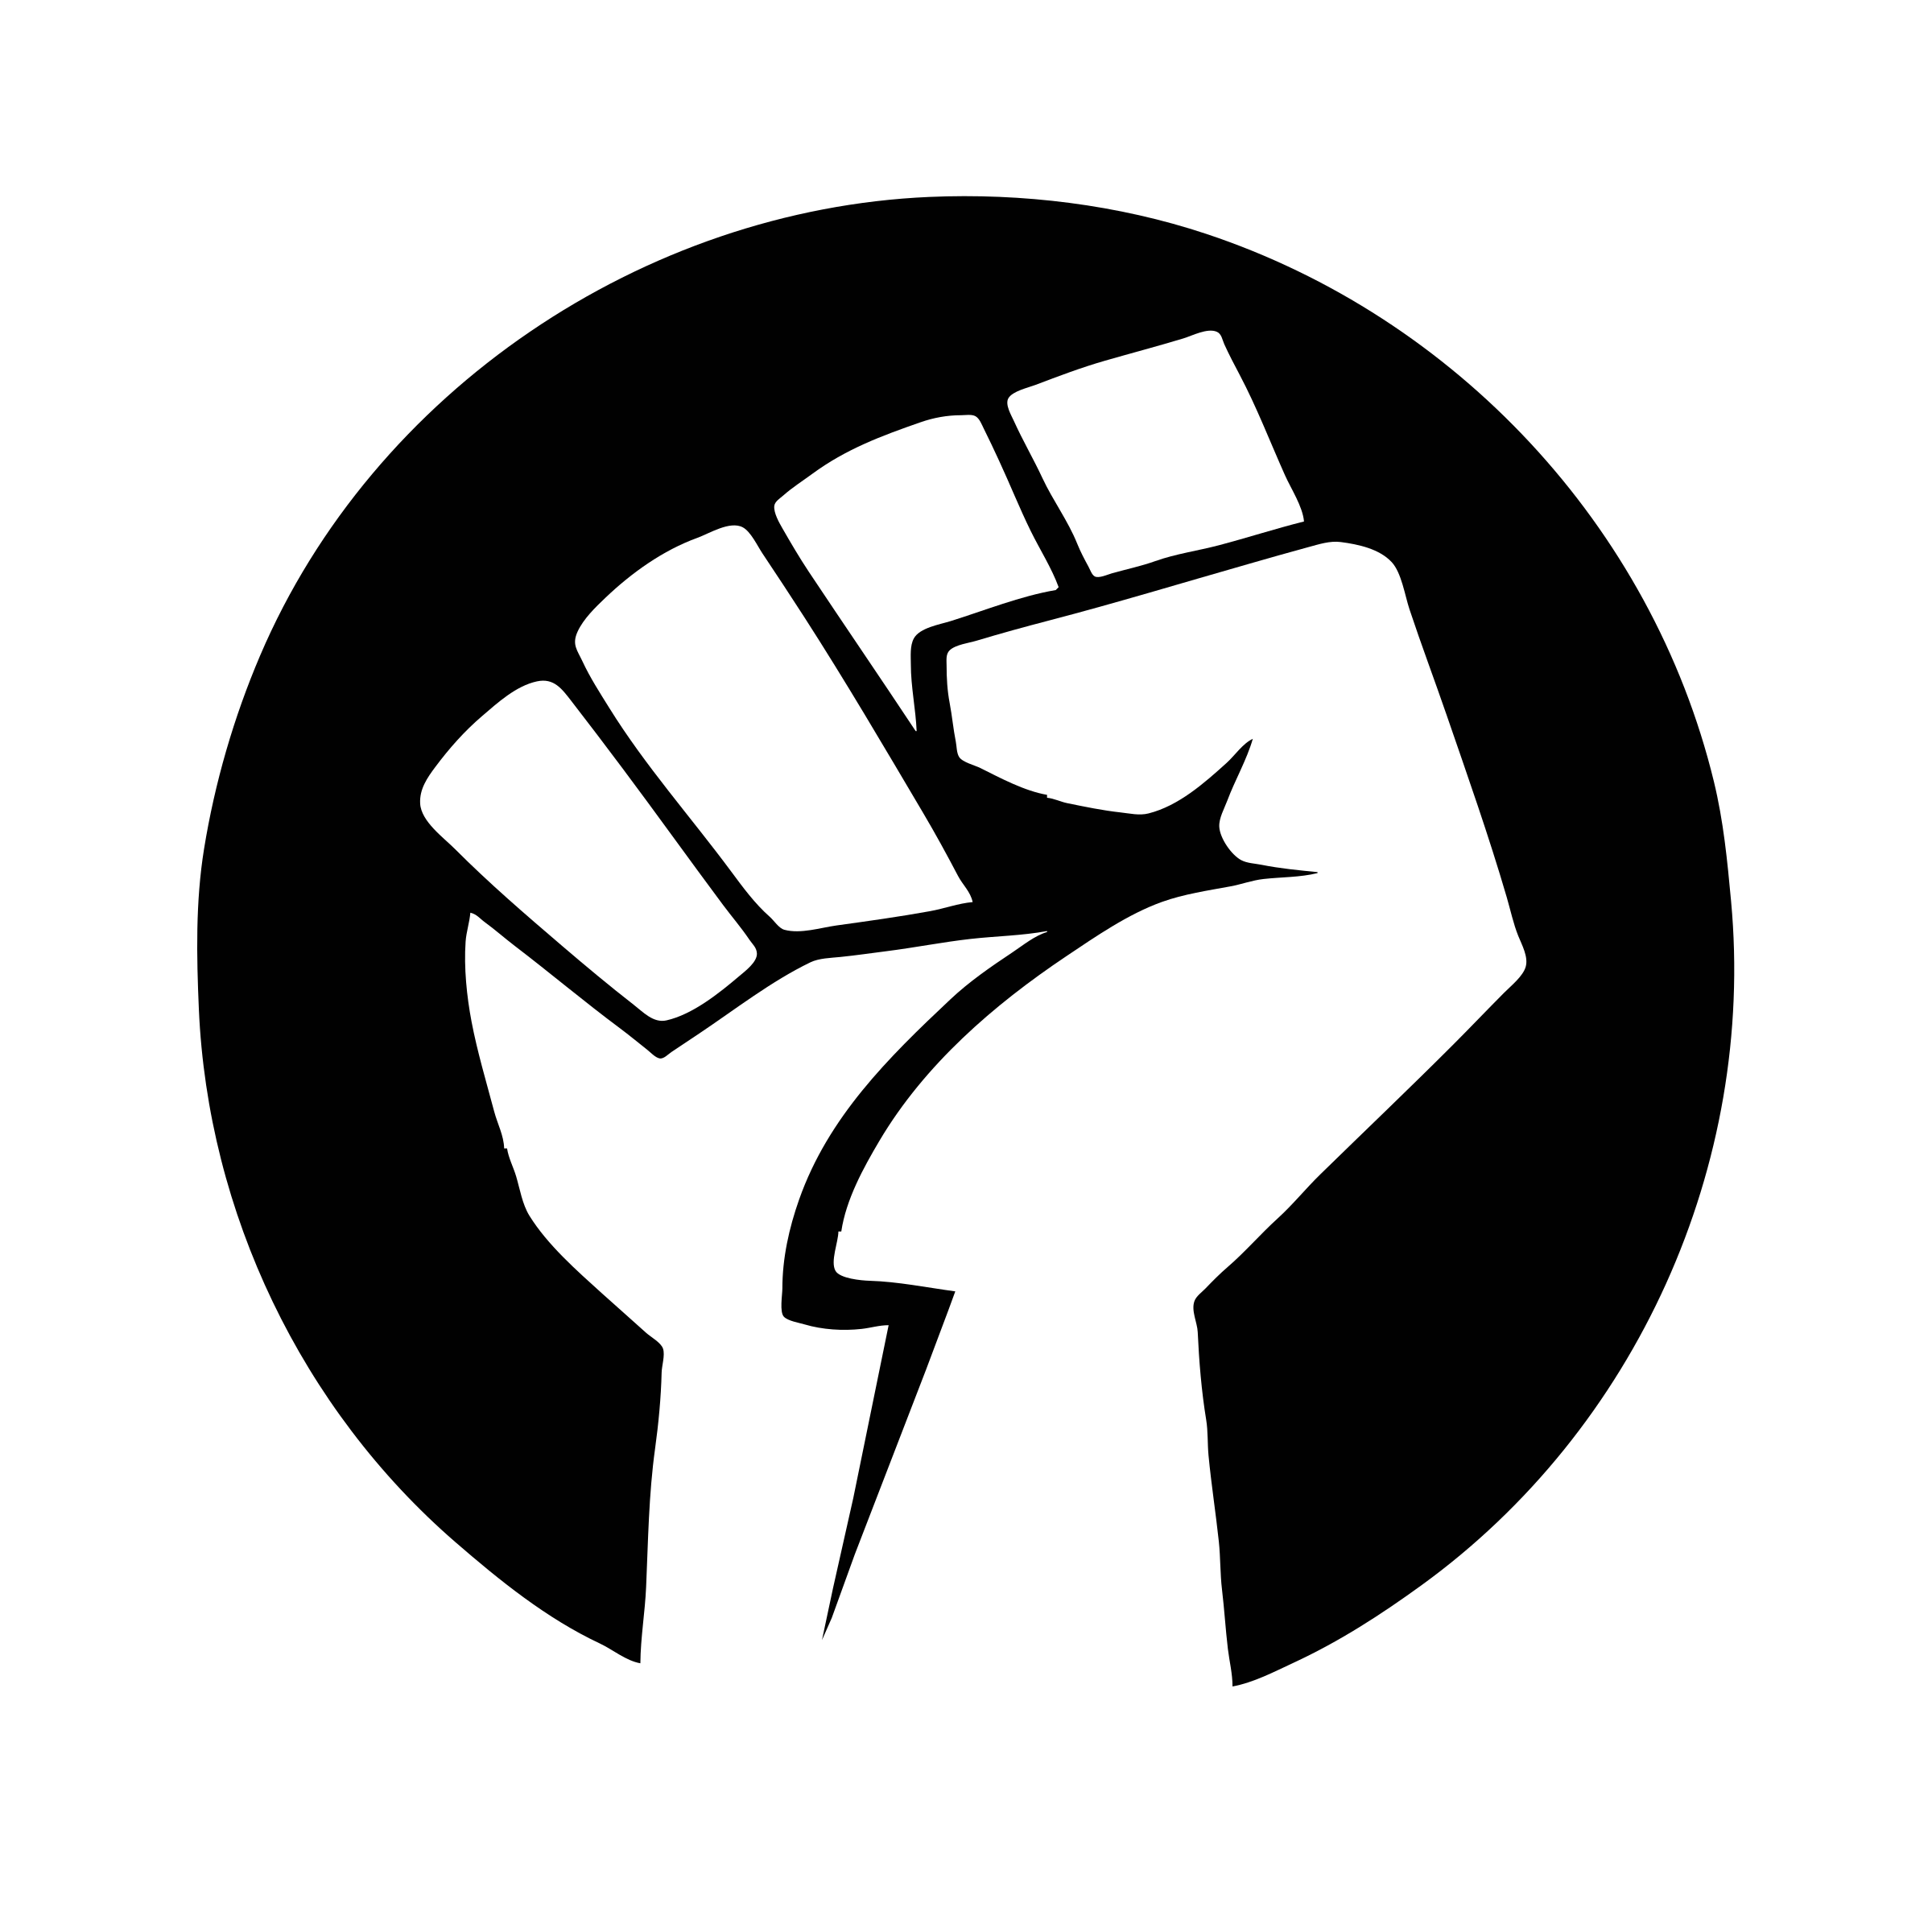 Fist clipart unity. Power bw by antti